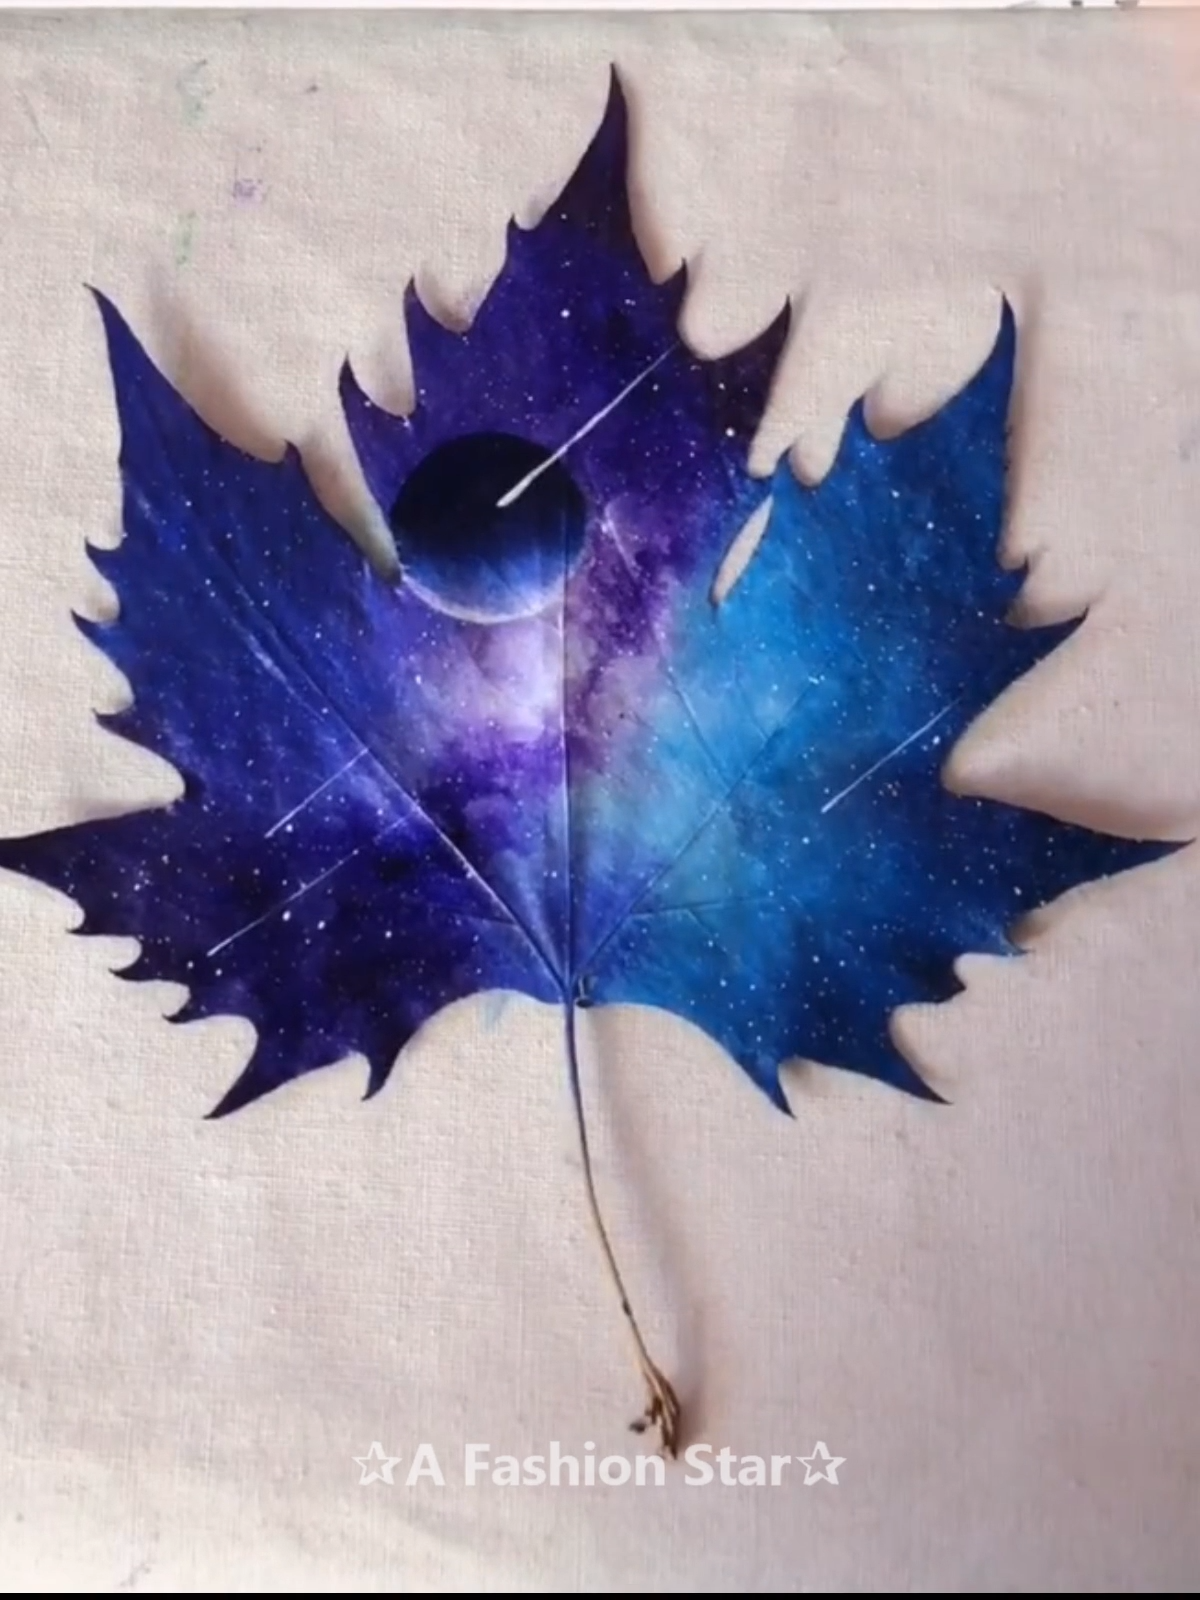 7 Easy Incredible Art On Leaves - Leaf Painting Ideas For Home Decor #houseinterior